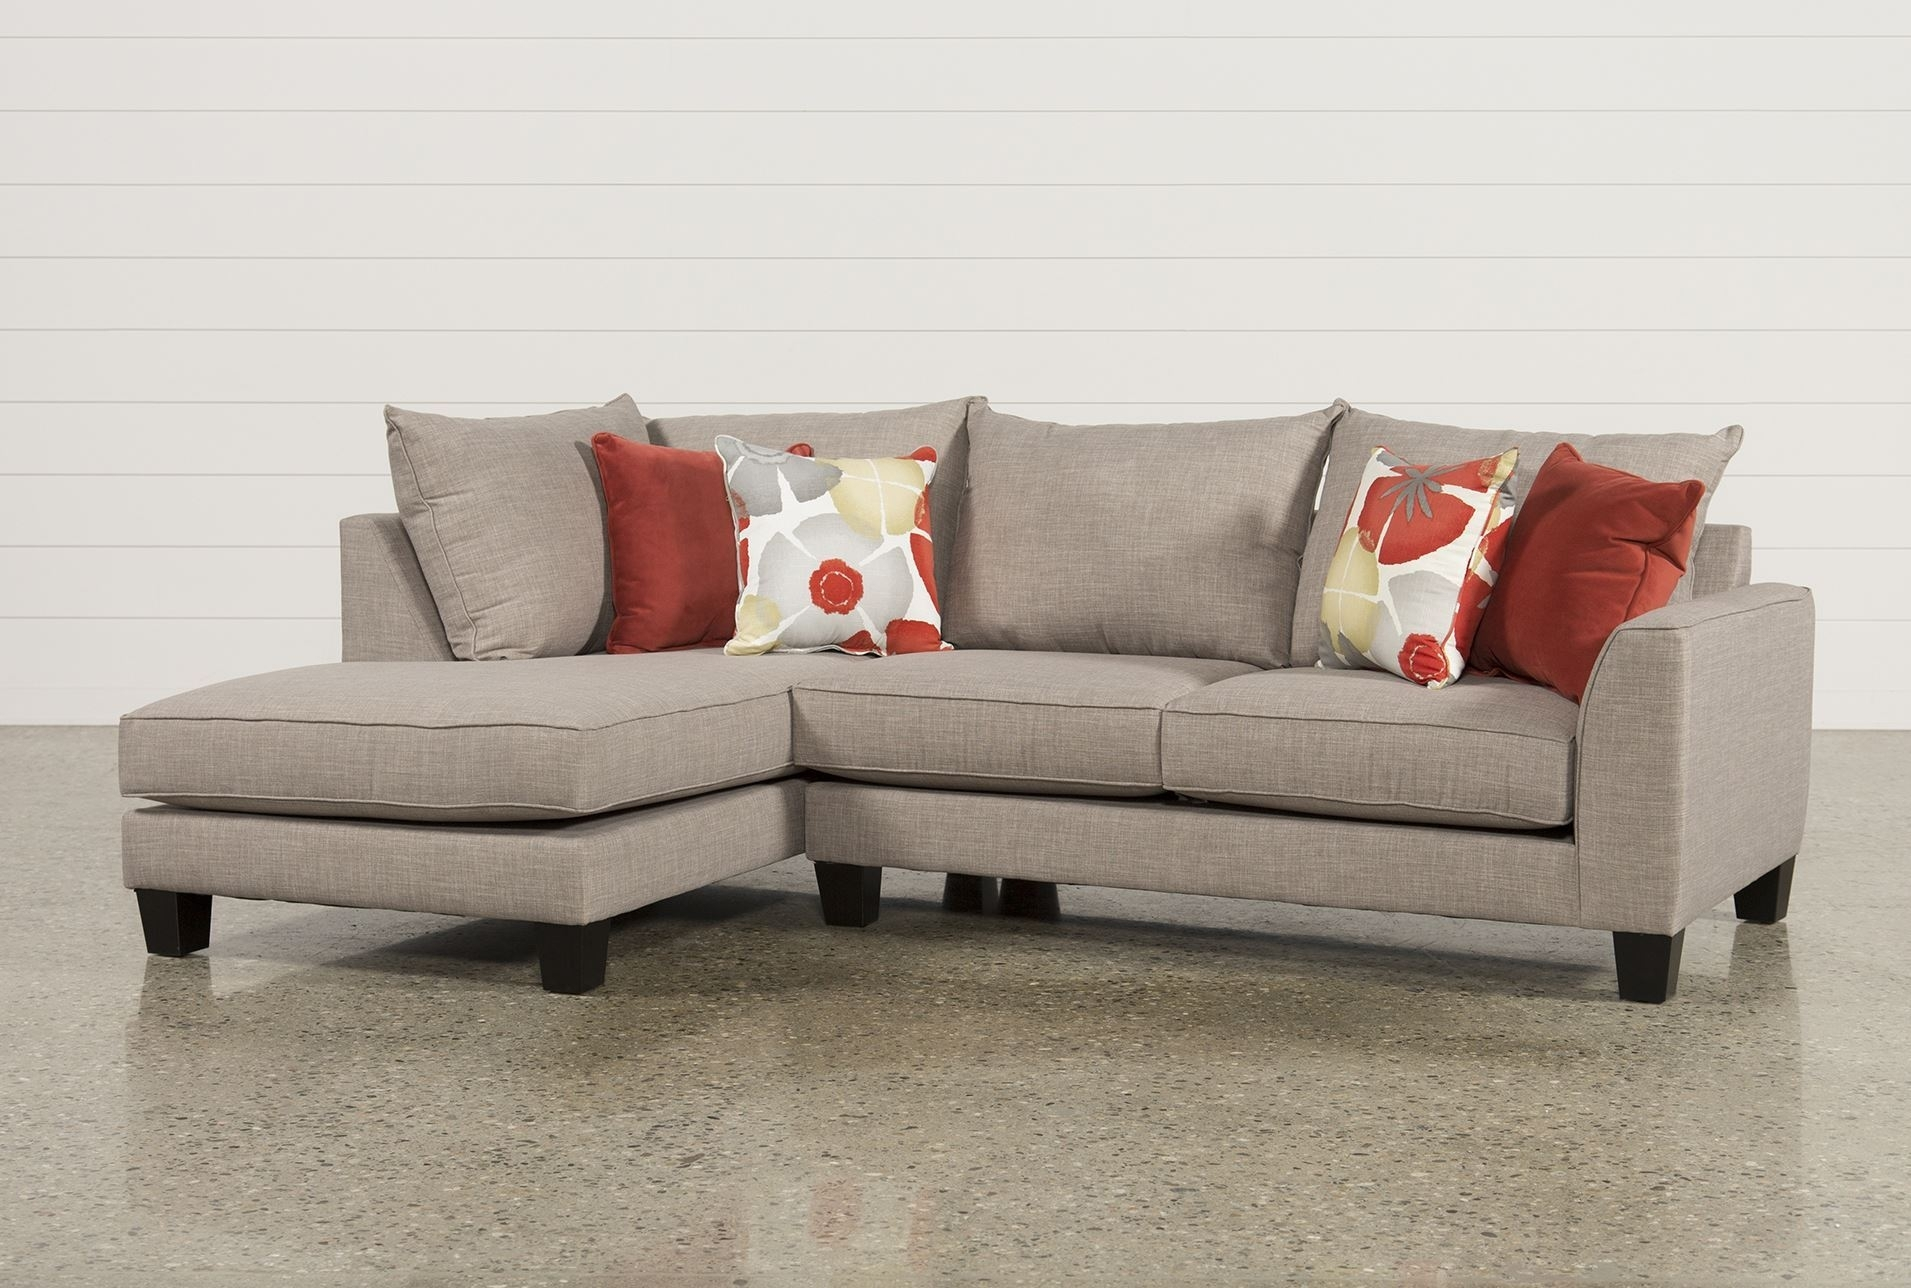 Bunch Ideas Of 2 Piece Chaise Sectional With Additional Kira 2 Piece with Delano 2 Piece Sectionals With Raf Oversized Chaise (Image 6 of 30)